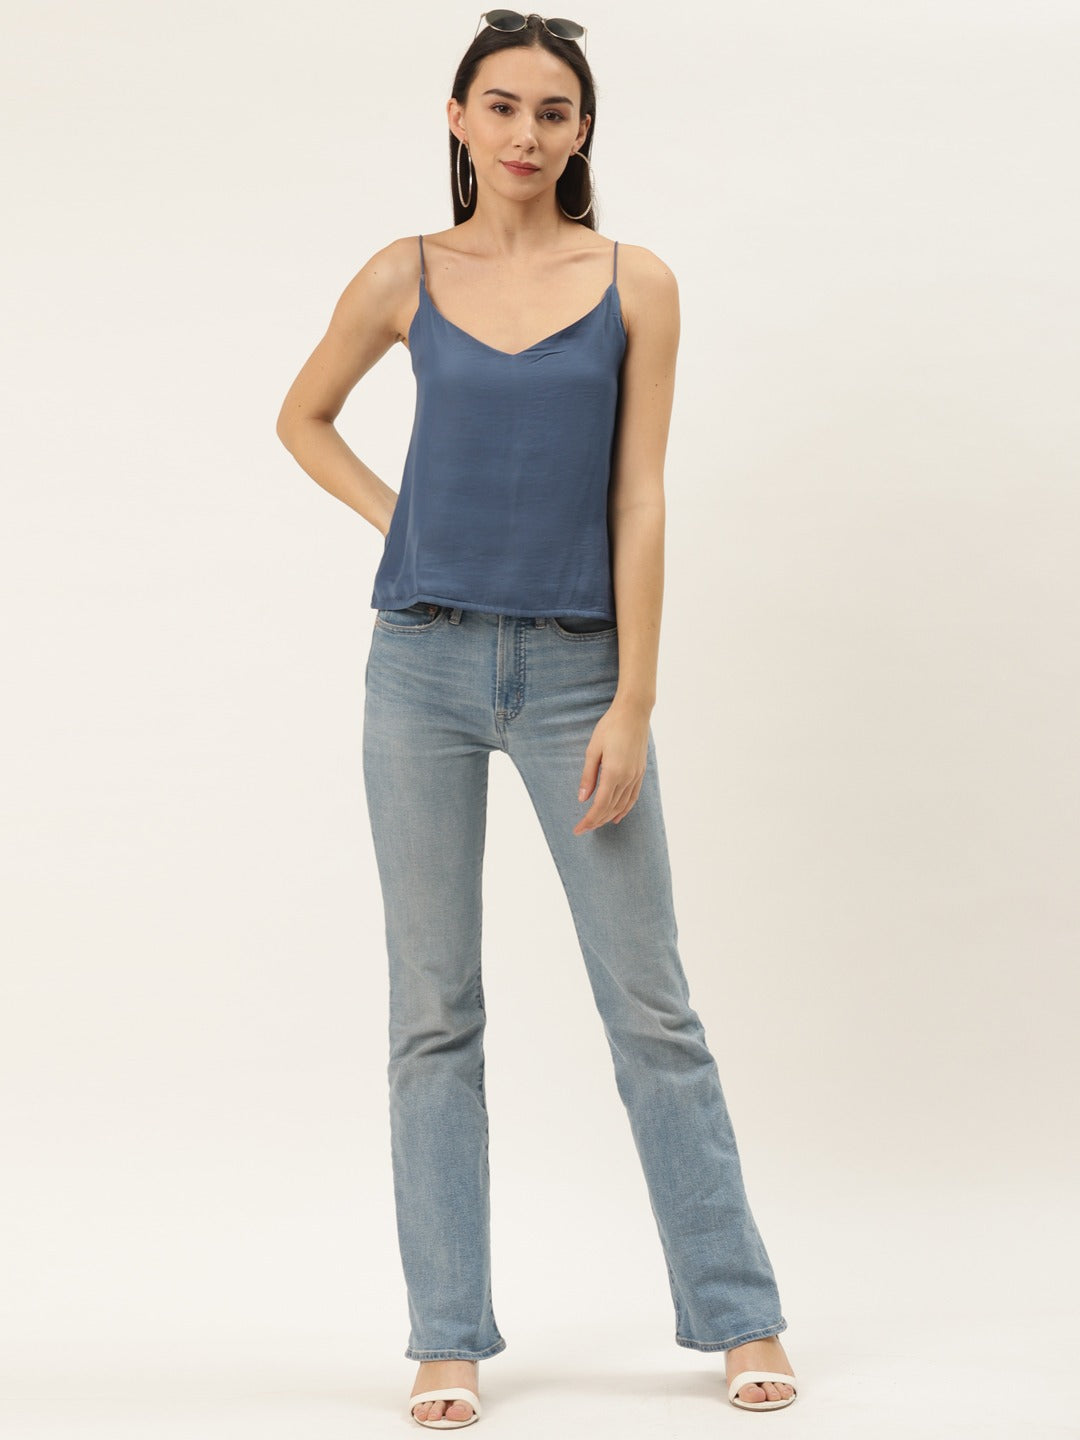 Solid Blue Basic Top